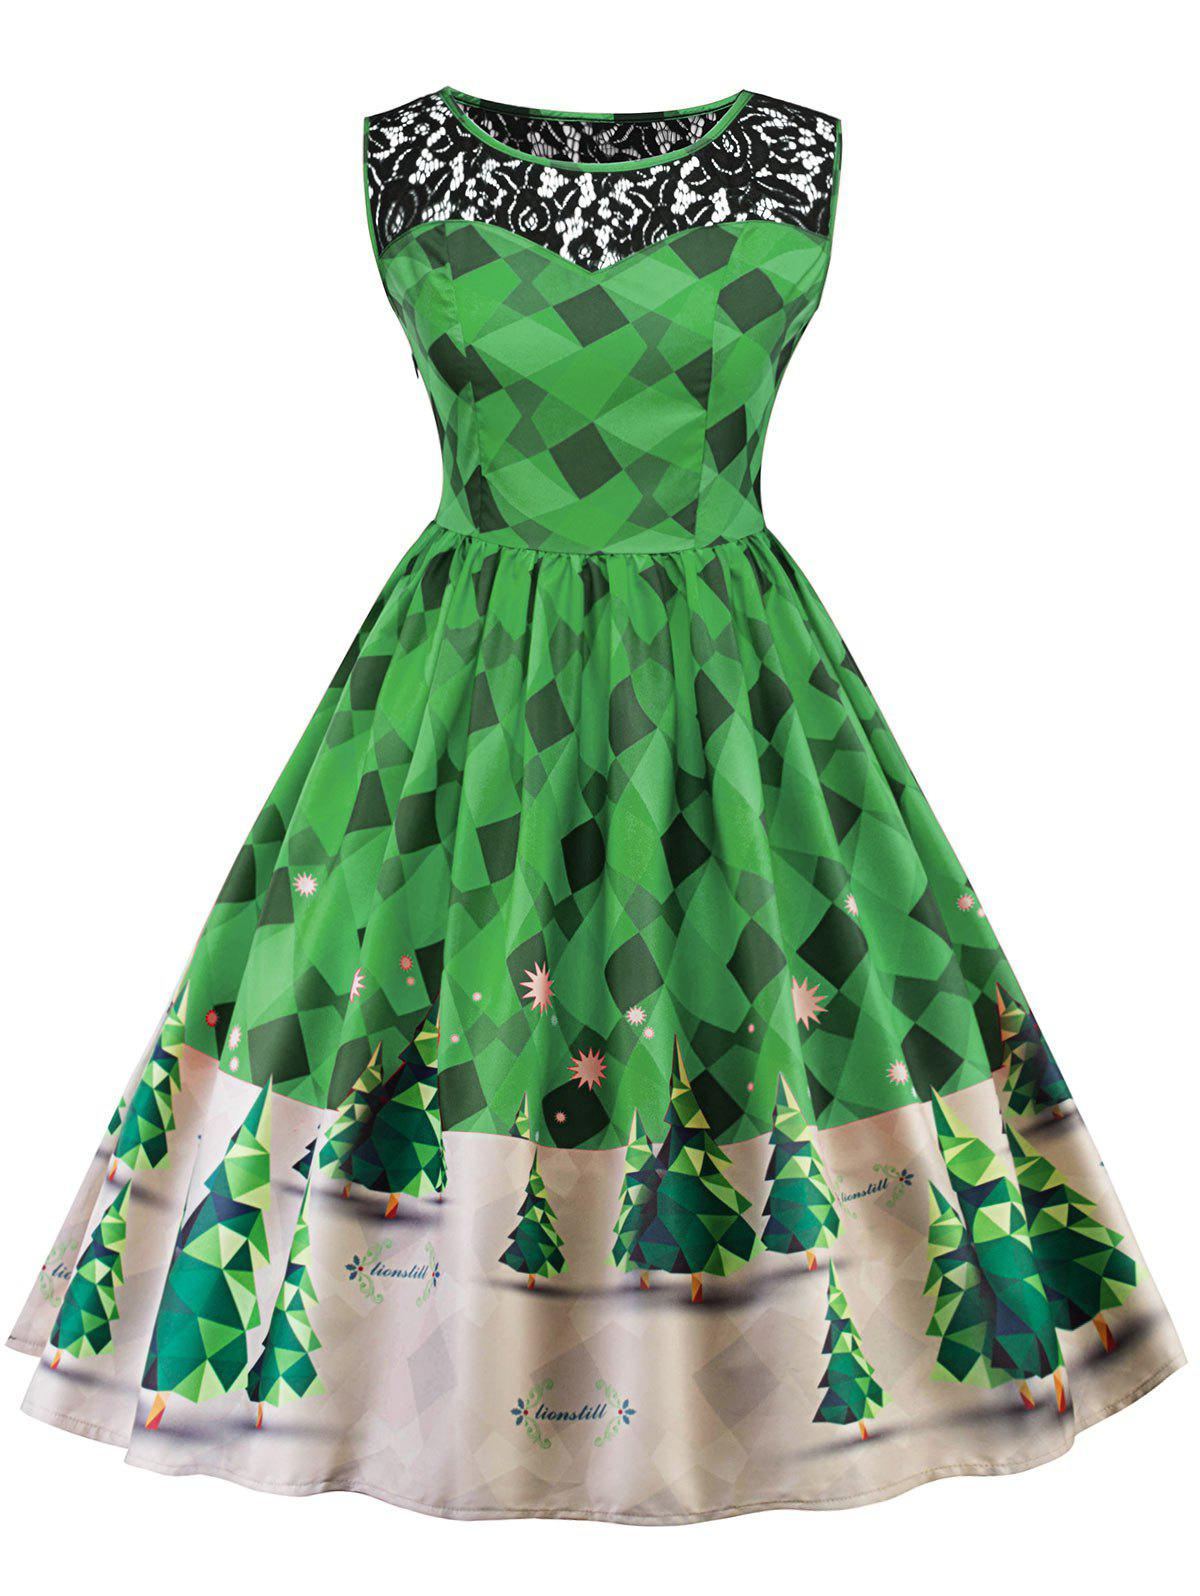 Vintage Christmas Lace Insert Pin Up Skater DressWOMEN<br><br>Size: 2XL; Color: GREEN; Style: Vintage; Material: Polyester; Silhouette: A-Line; Dresses Length: Knee-Length; Neckline: Round Collar; Sleeve Length: Sleeveless; Pattern Type: Patchwork,Print; With Belt: No; Season: Fall,Spring; Weight: 0.2800kg; Package Contents: 1 x Dress;